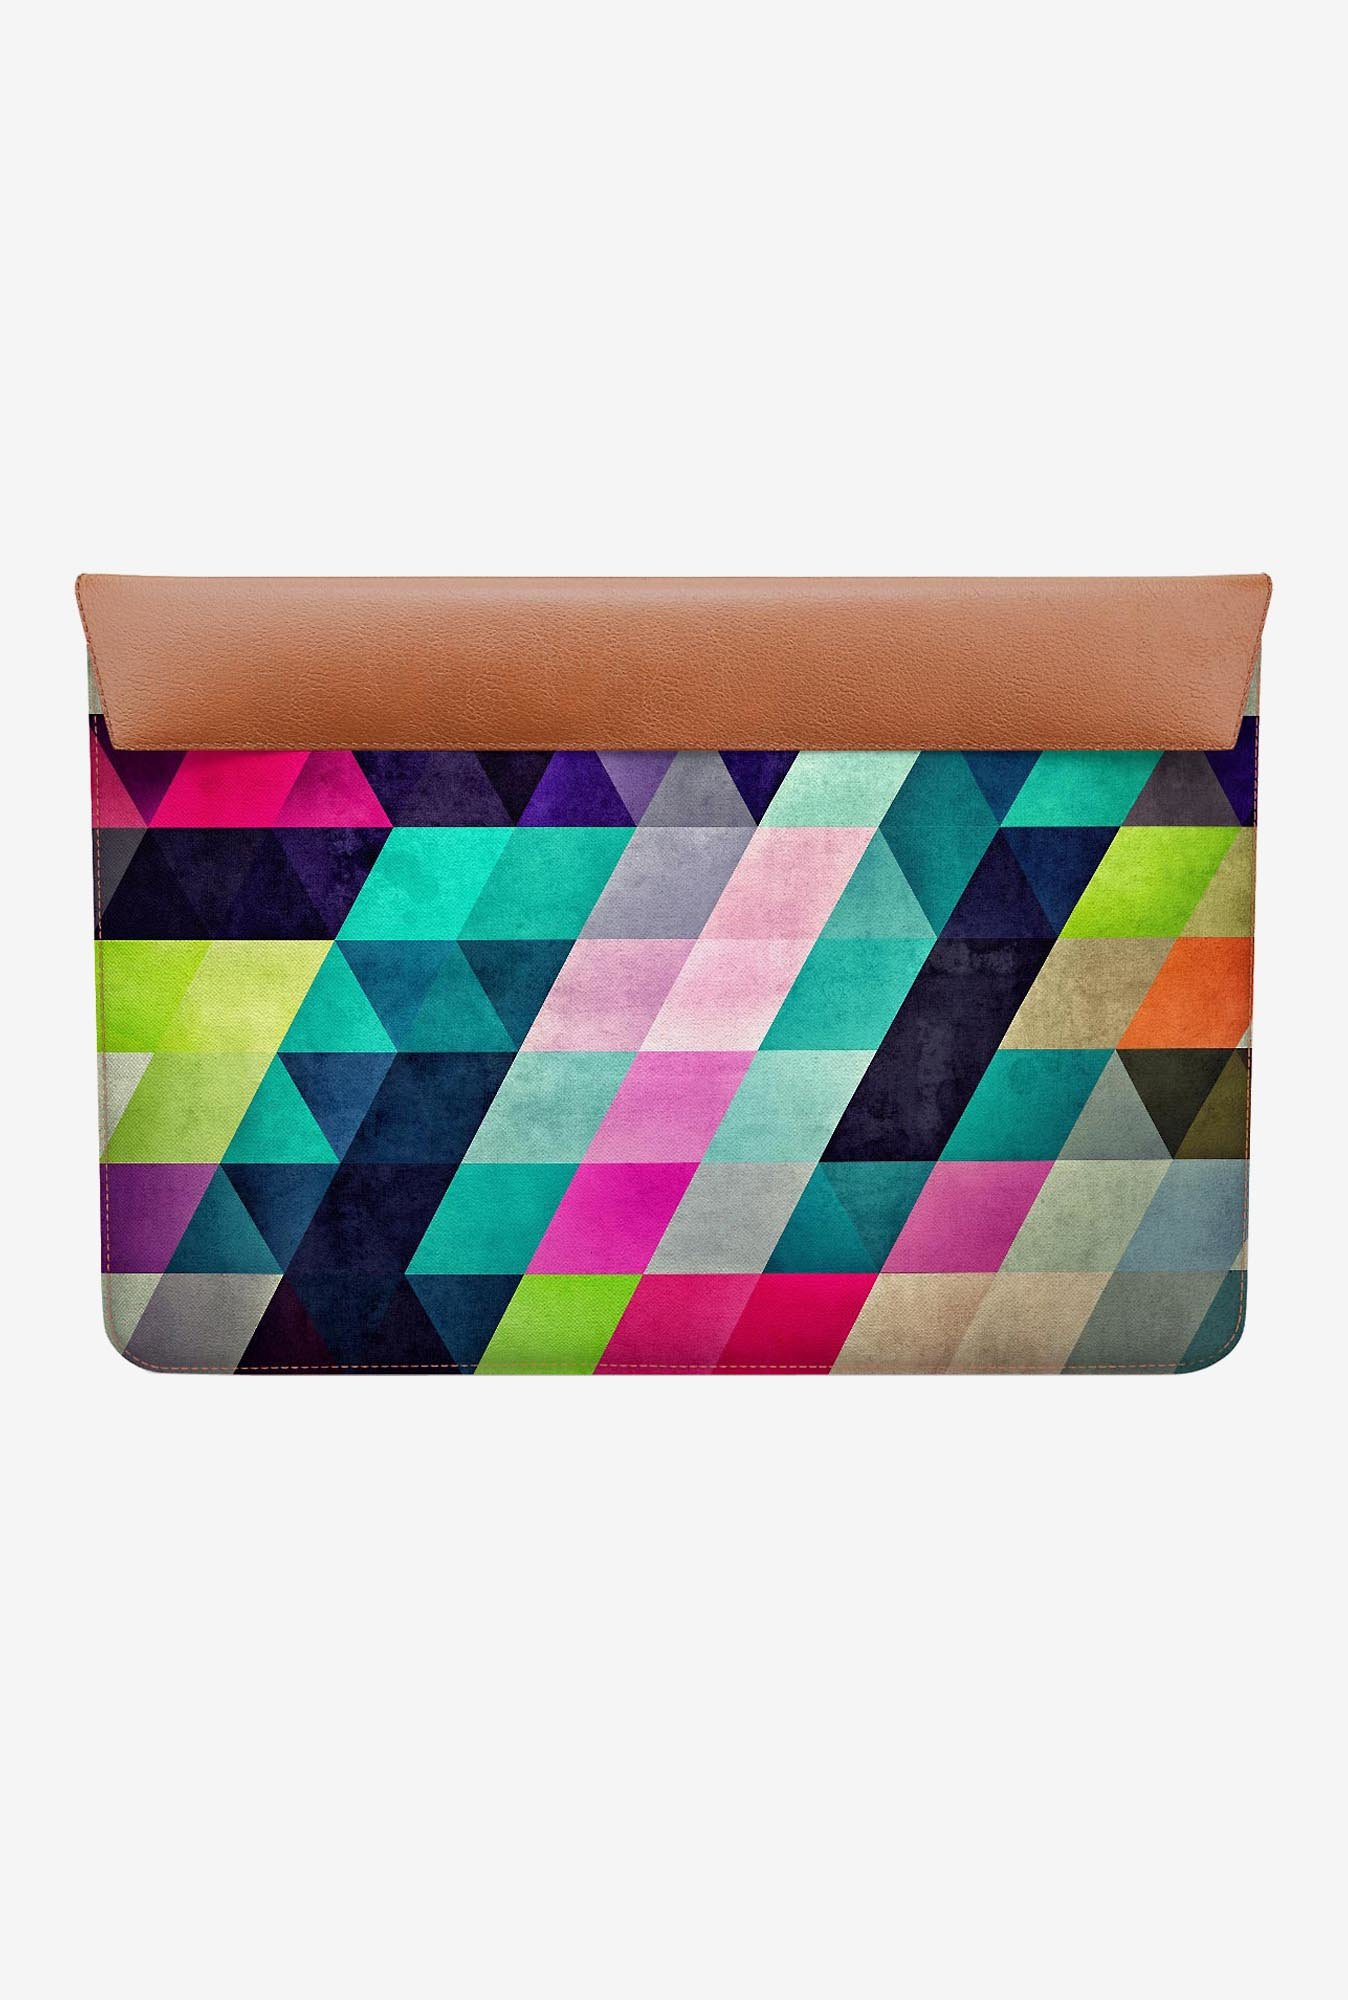 DailyObjects Cyrvynne Xyx MacBook Pro 13 Envelope Sleeve